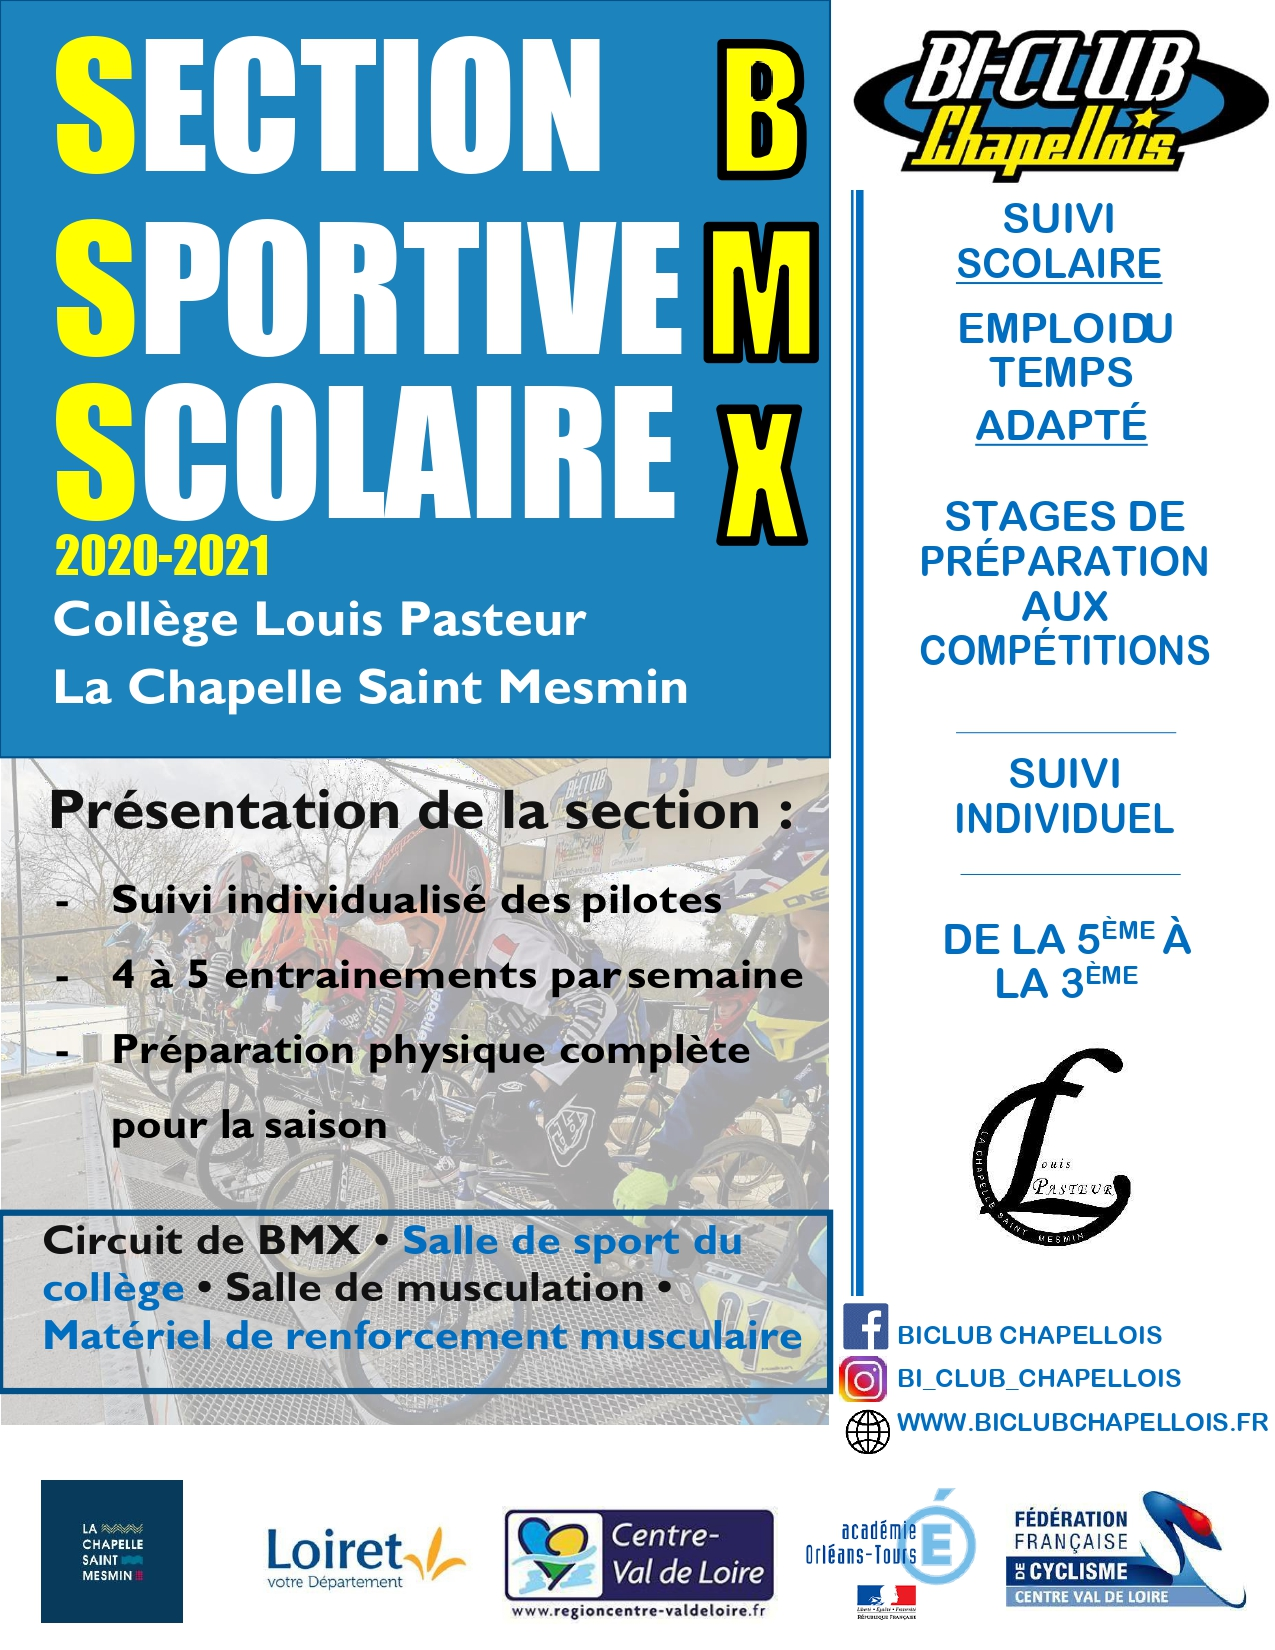 Flyer section sportive scolaire